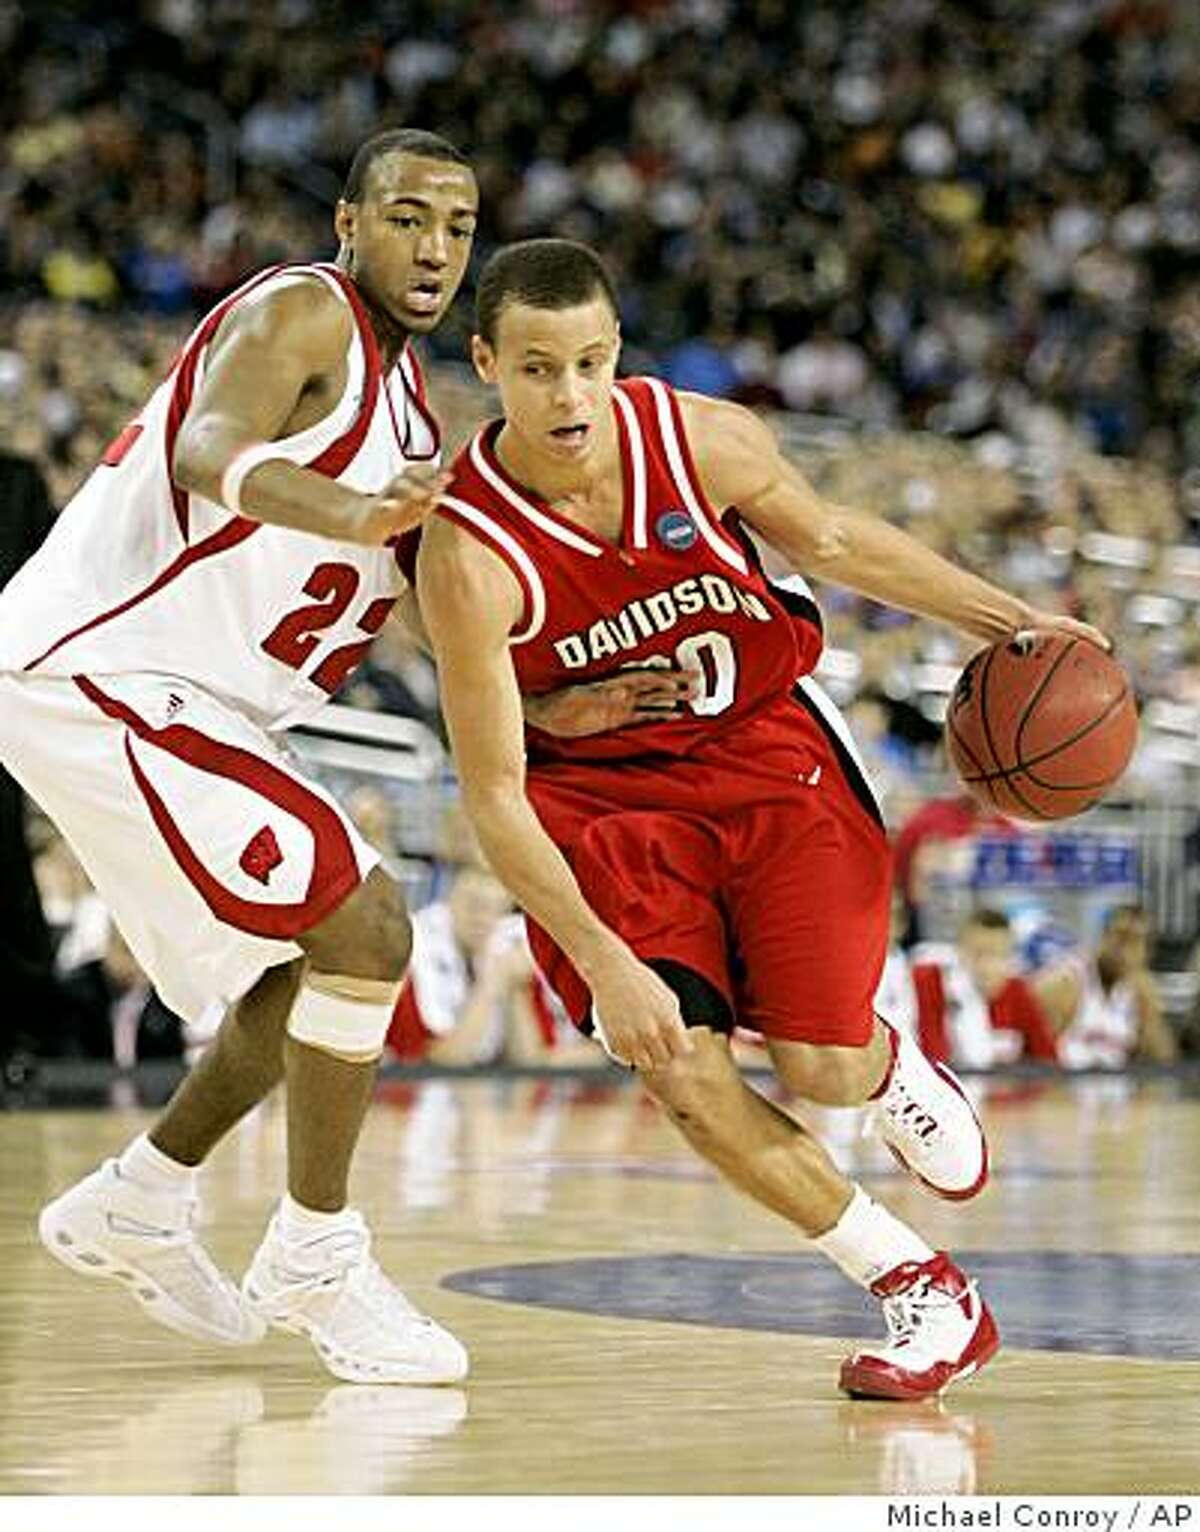 Stephen Curry (1 of 2) A Chronicle story responded to the NCAA All-America selections with its own